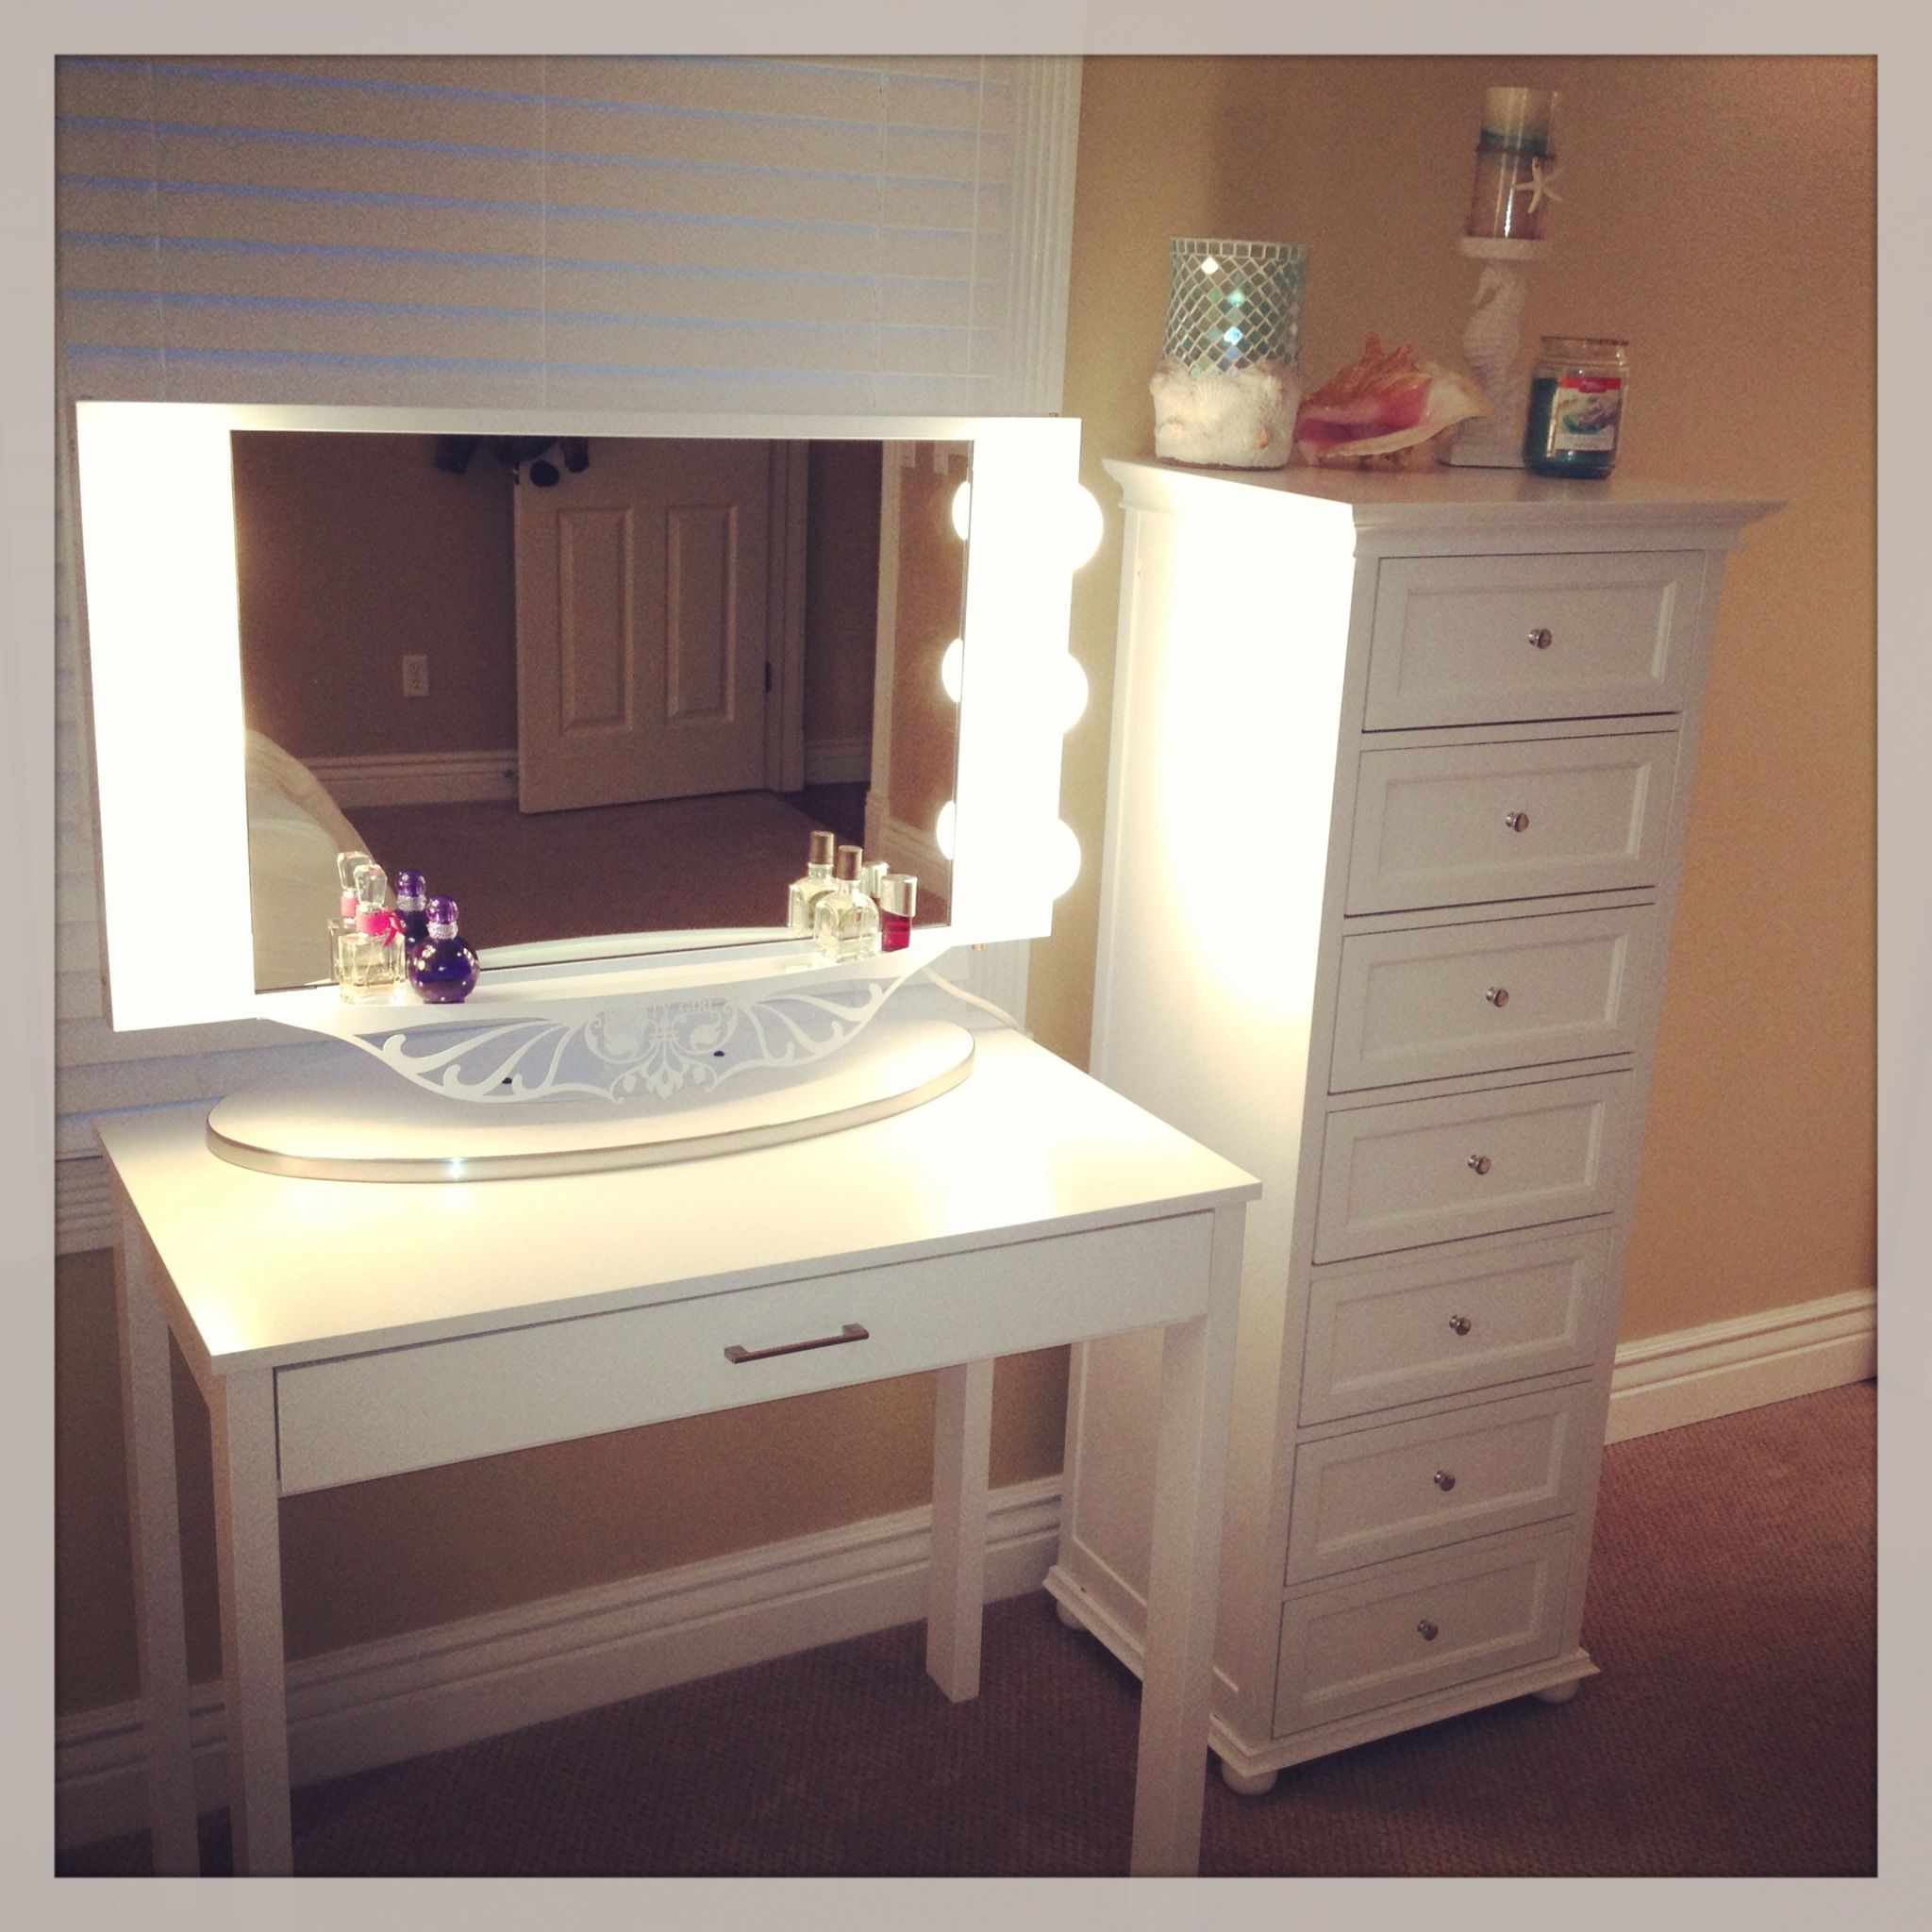 Makeup Desk For A Small Area Desk From Target Drawers From - Making a vanity mirror